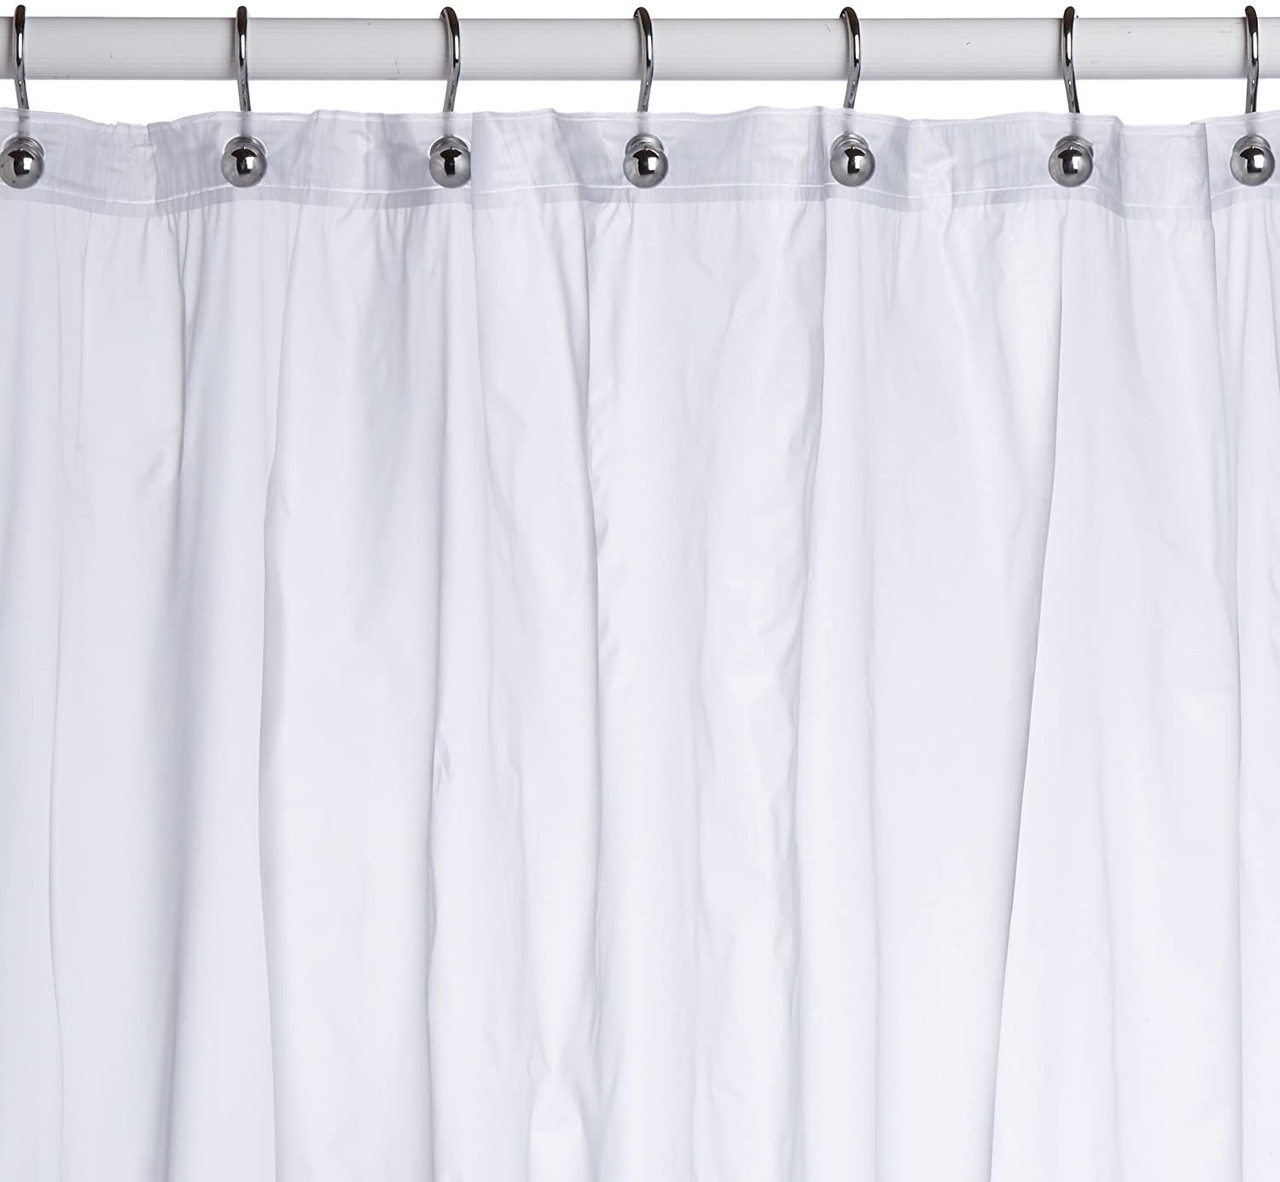 frosted clear vinyl shower curtain liner 6 gauge with grommets and magnets